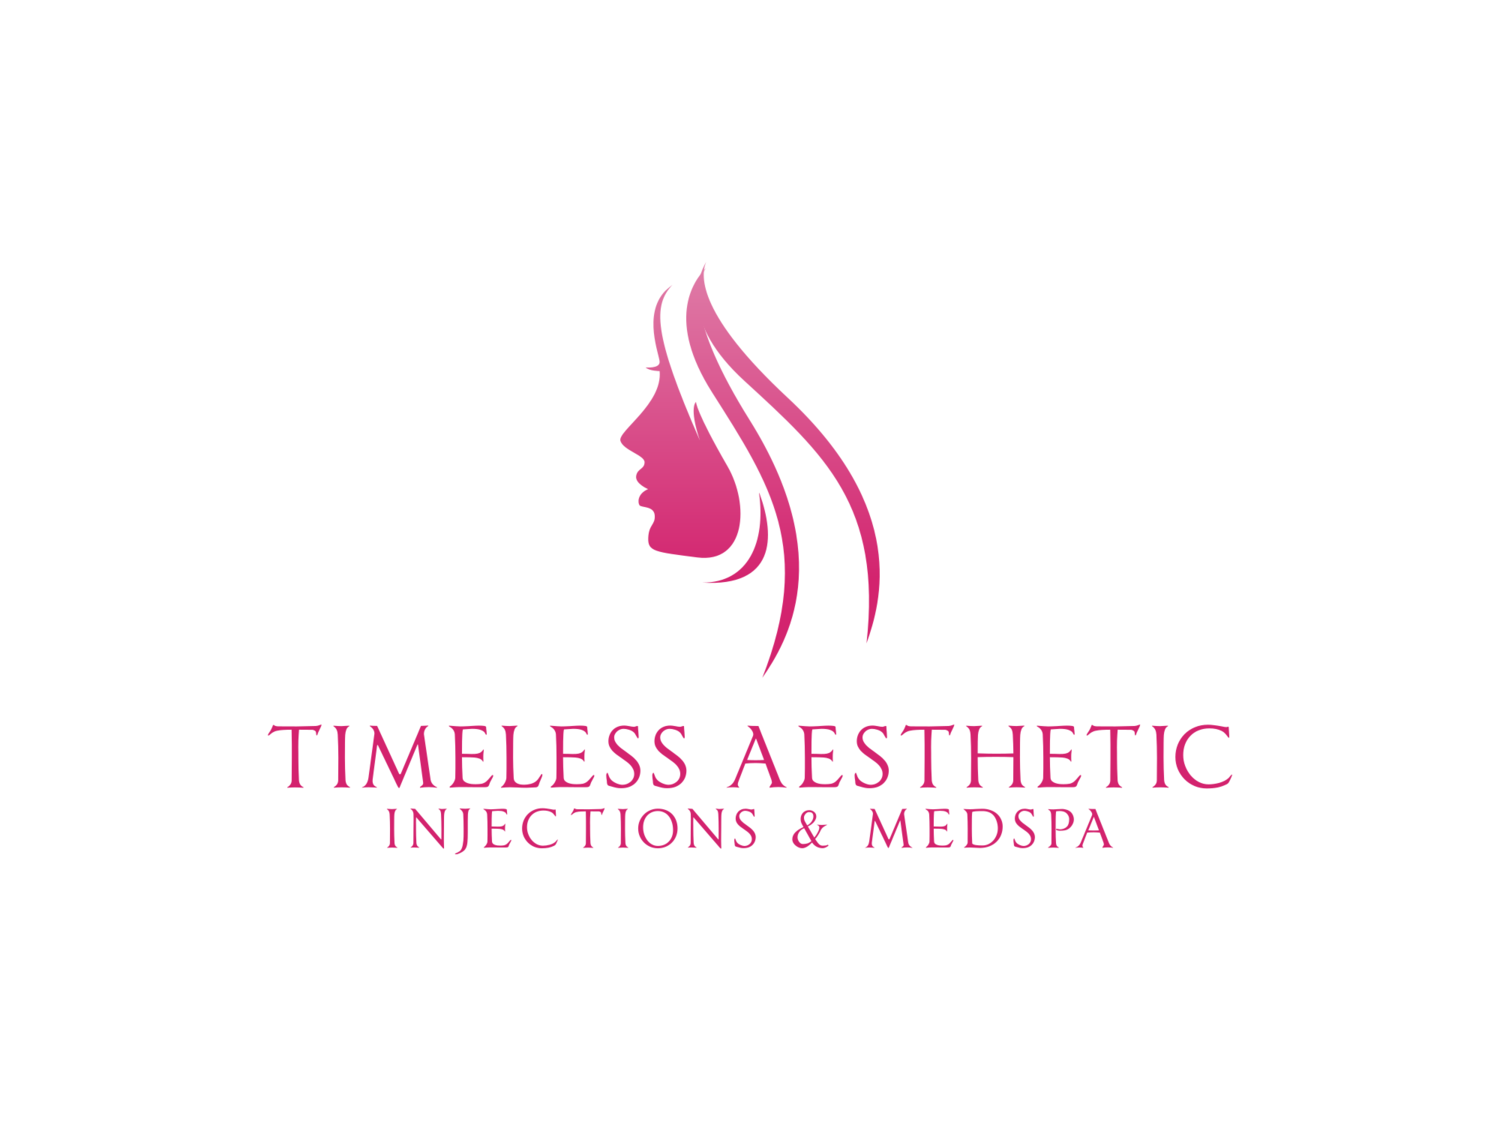 Aesthetician Services — Timeless Aesthetic Injections